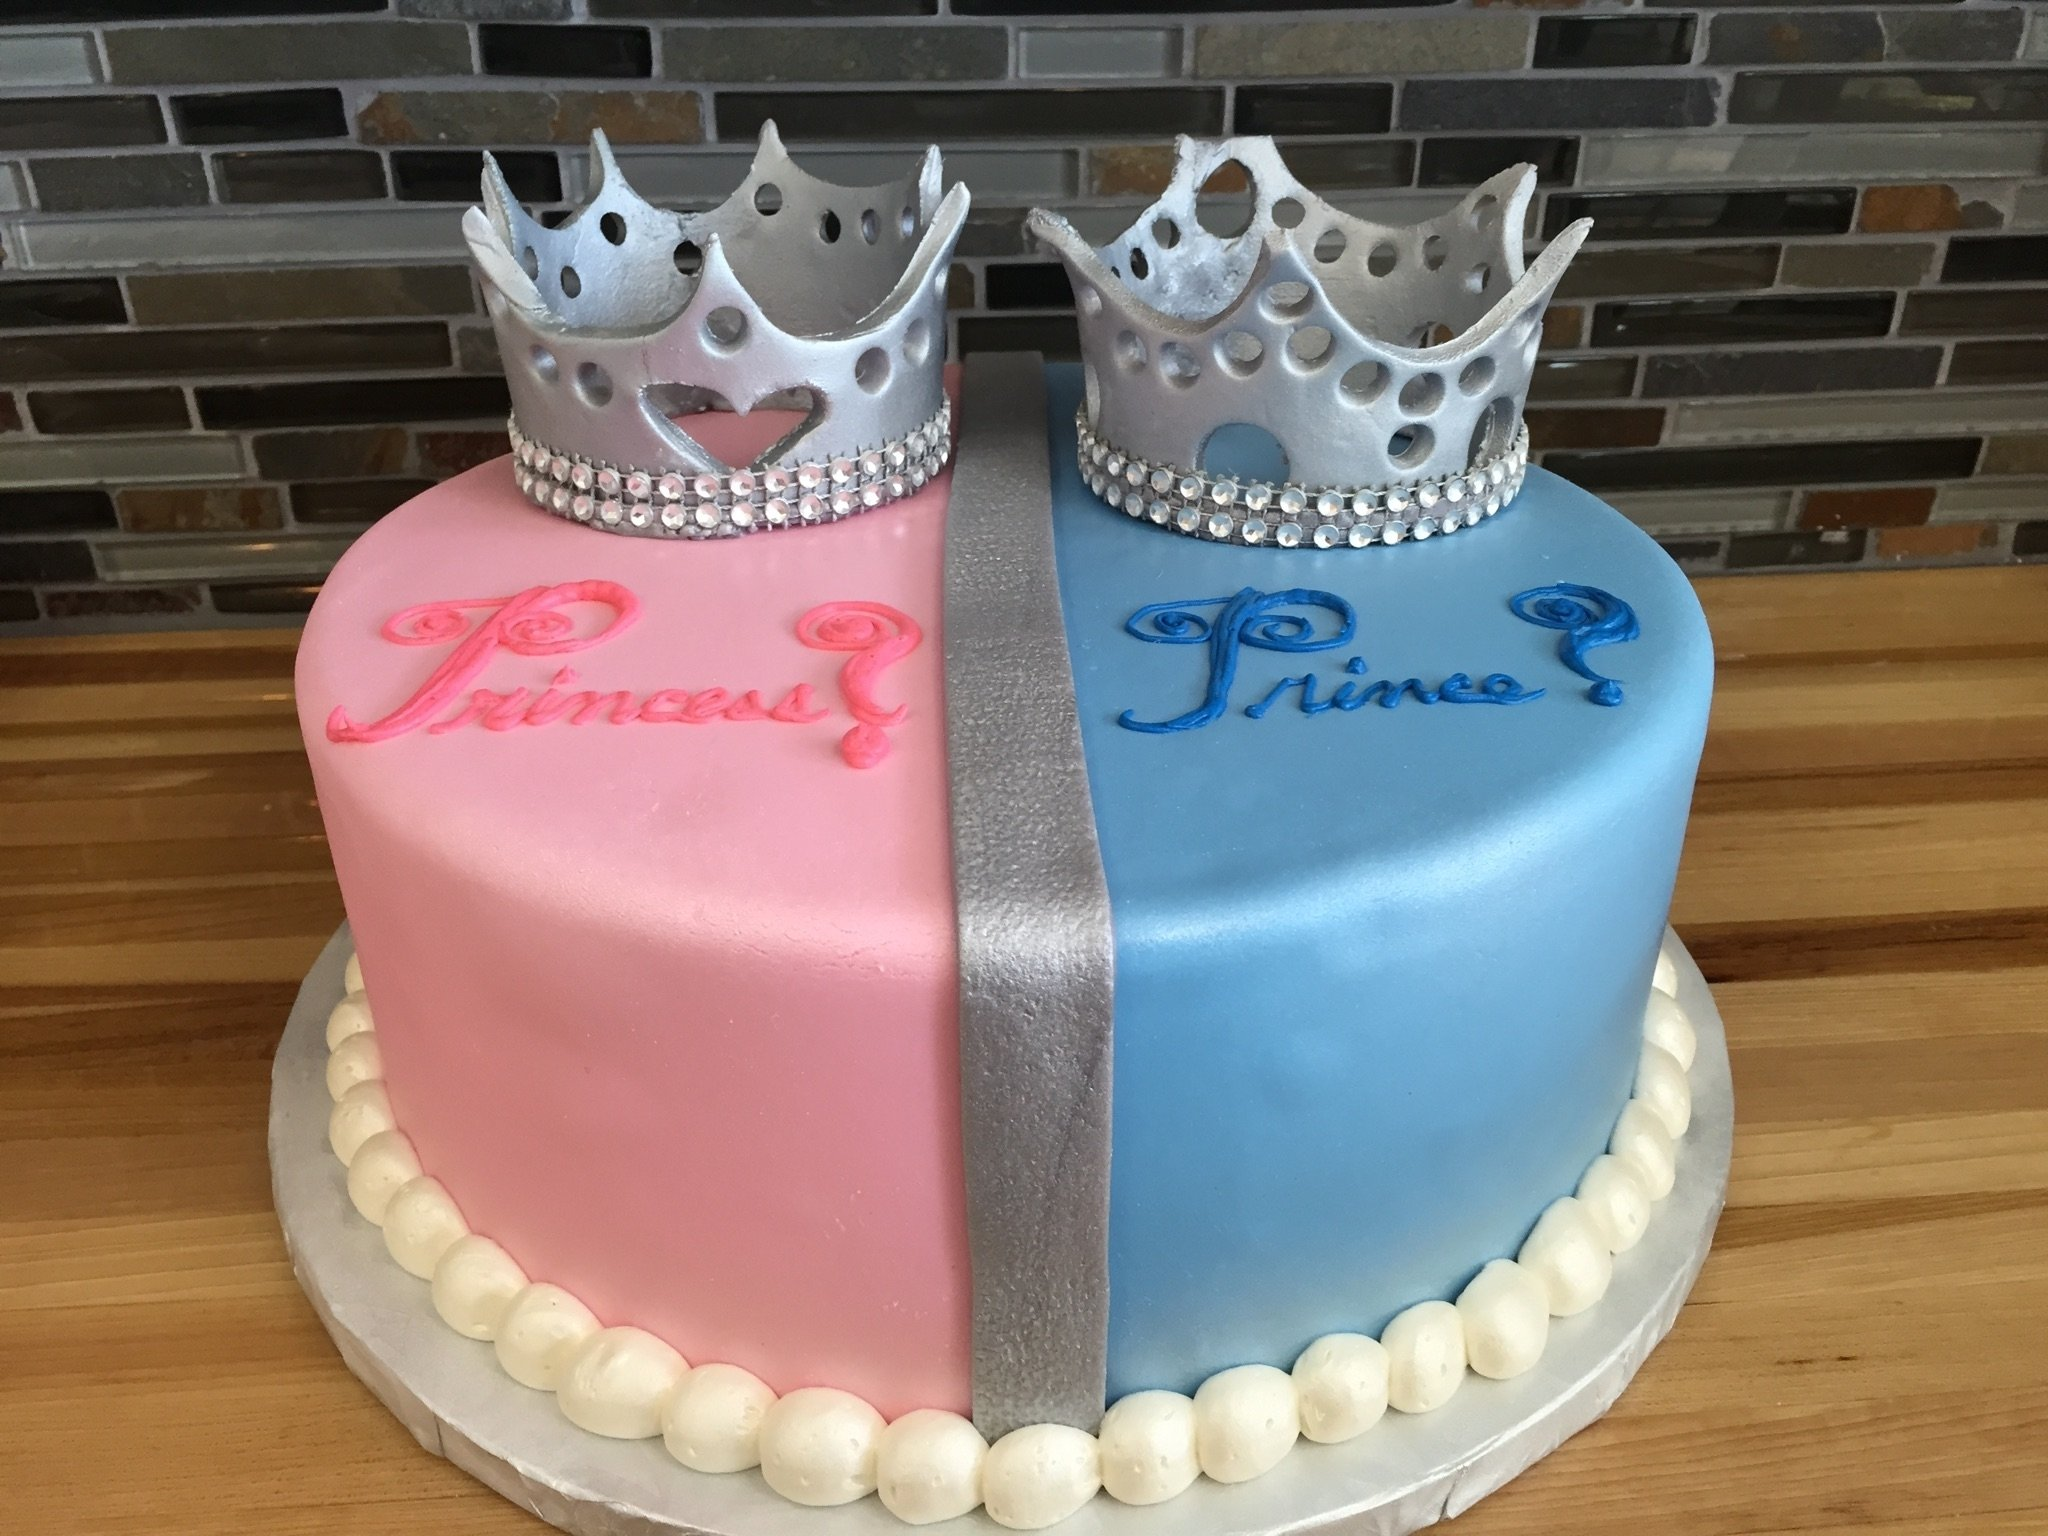 10 Beautiful Baby Gender Reveal Cake Ideas 10 gender reveal cakes with crowns photo royal prince baby shower 2020